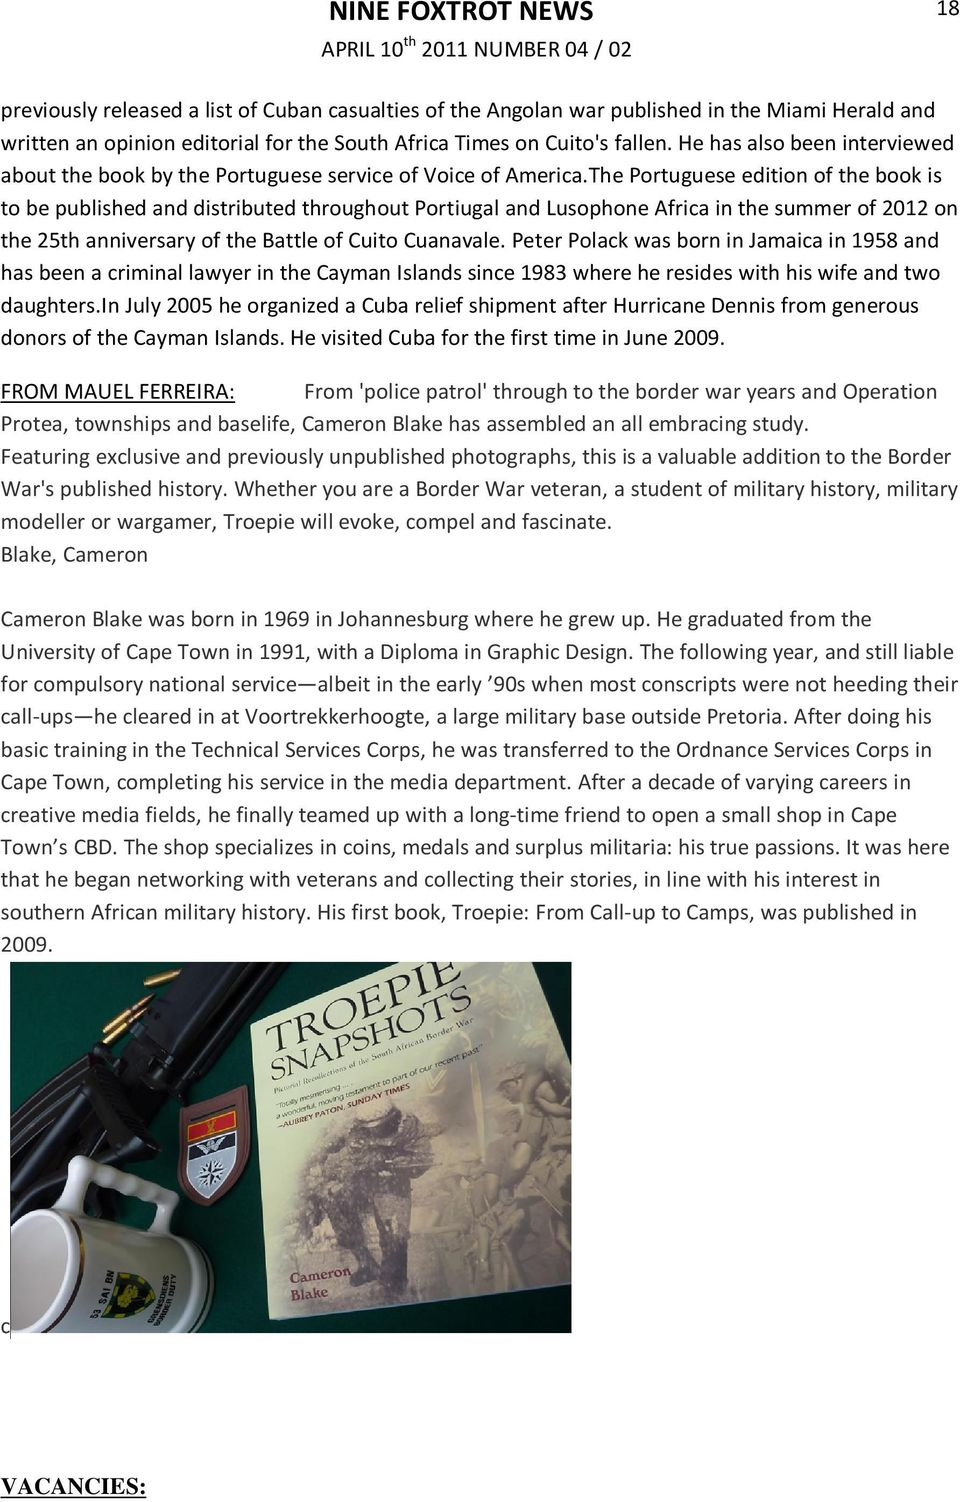 The Portuguese edition of the book is to be published and distributed throughout Portiugal and Lusophone Africa in the summer of 2012 on the 25th anniversary of the Battle of Cuito Cuanavale.